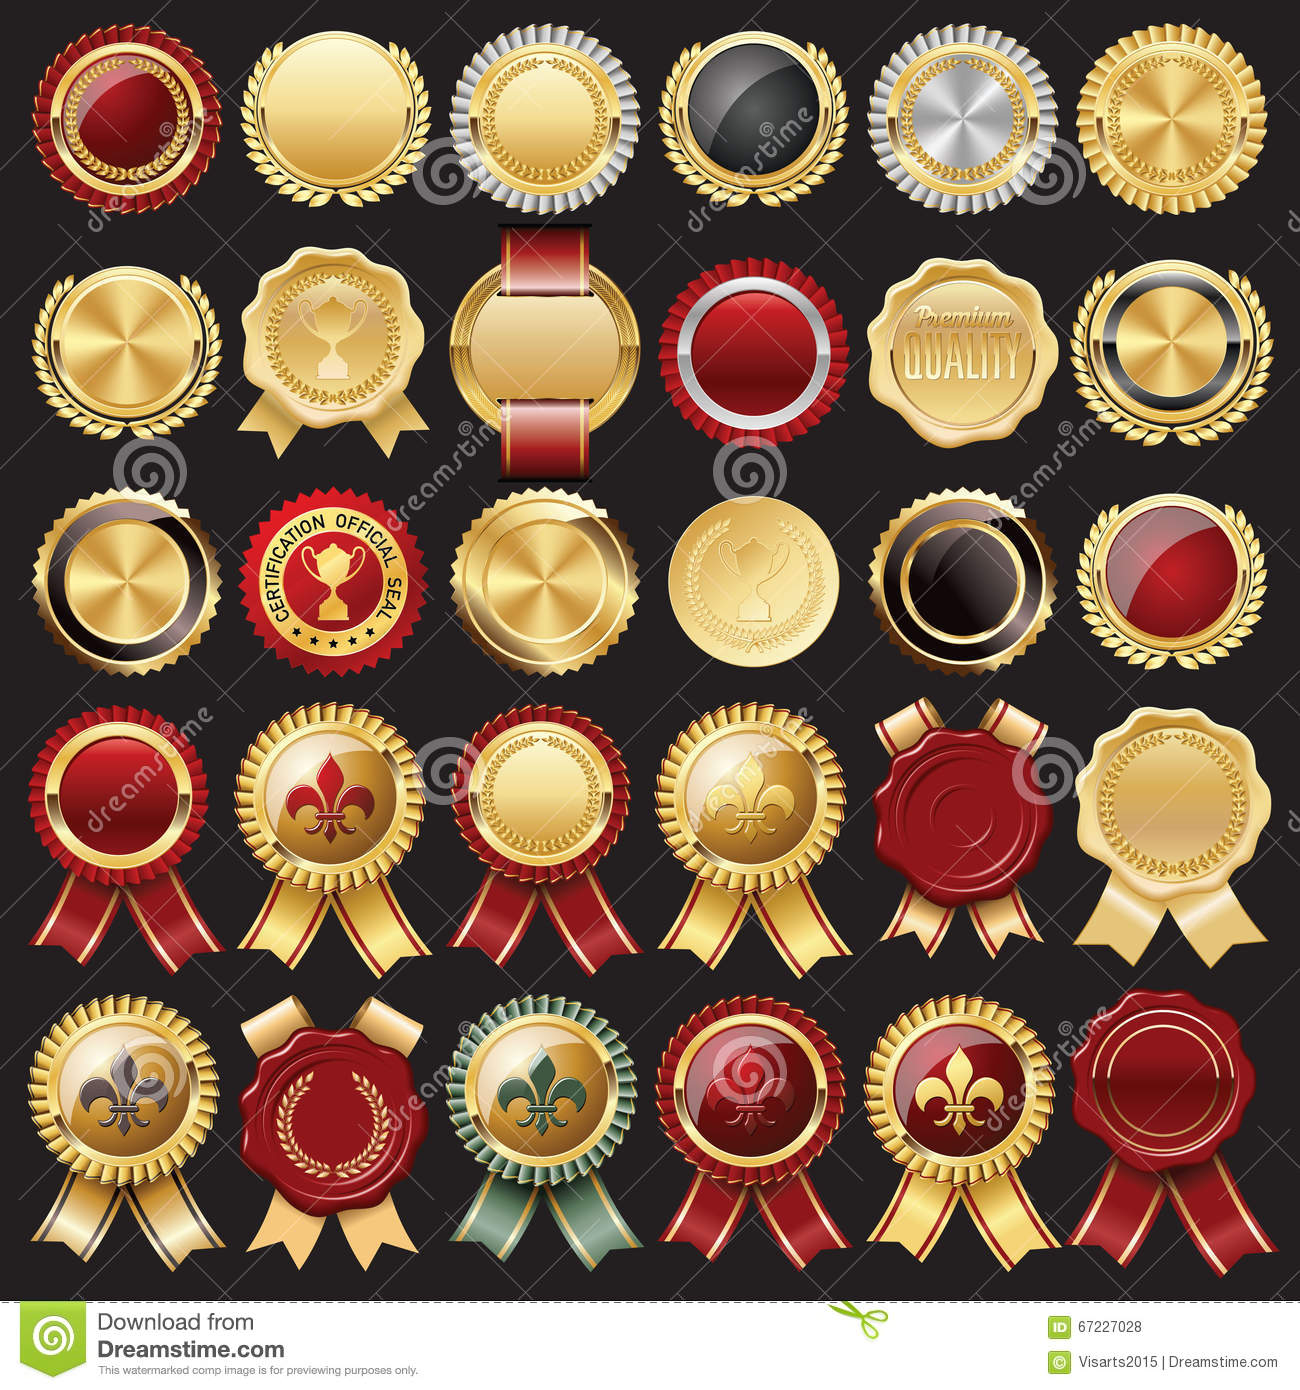 Certificate Wax Seal and Badges